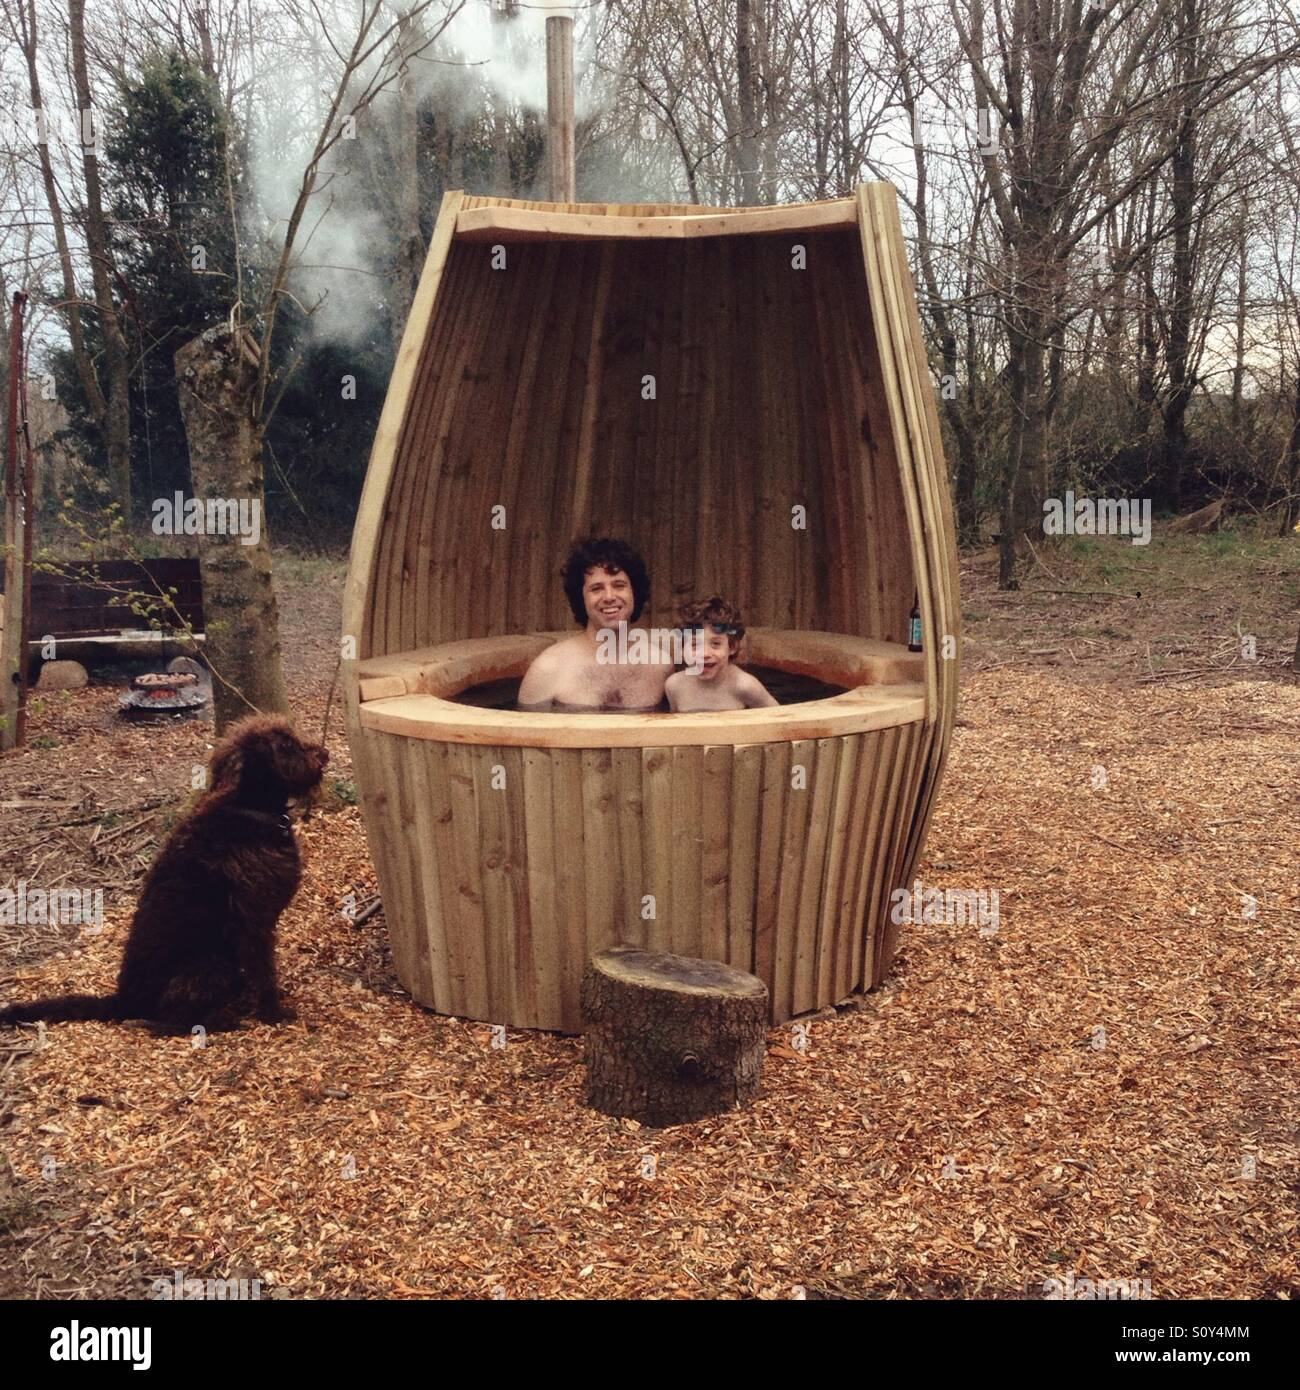 Father And Son In A Outdoor Hot Tub Being Watched By A Labradoodle Dog.